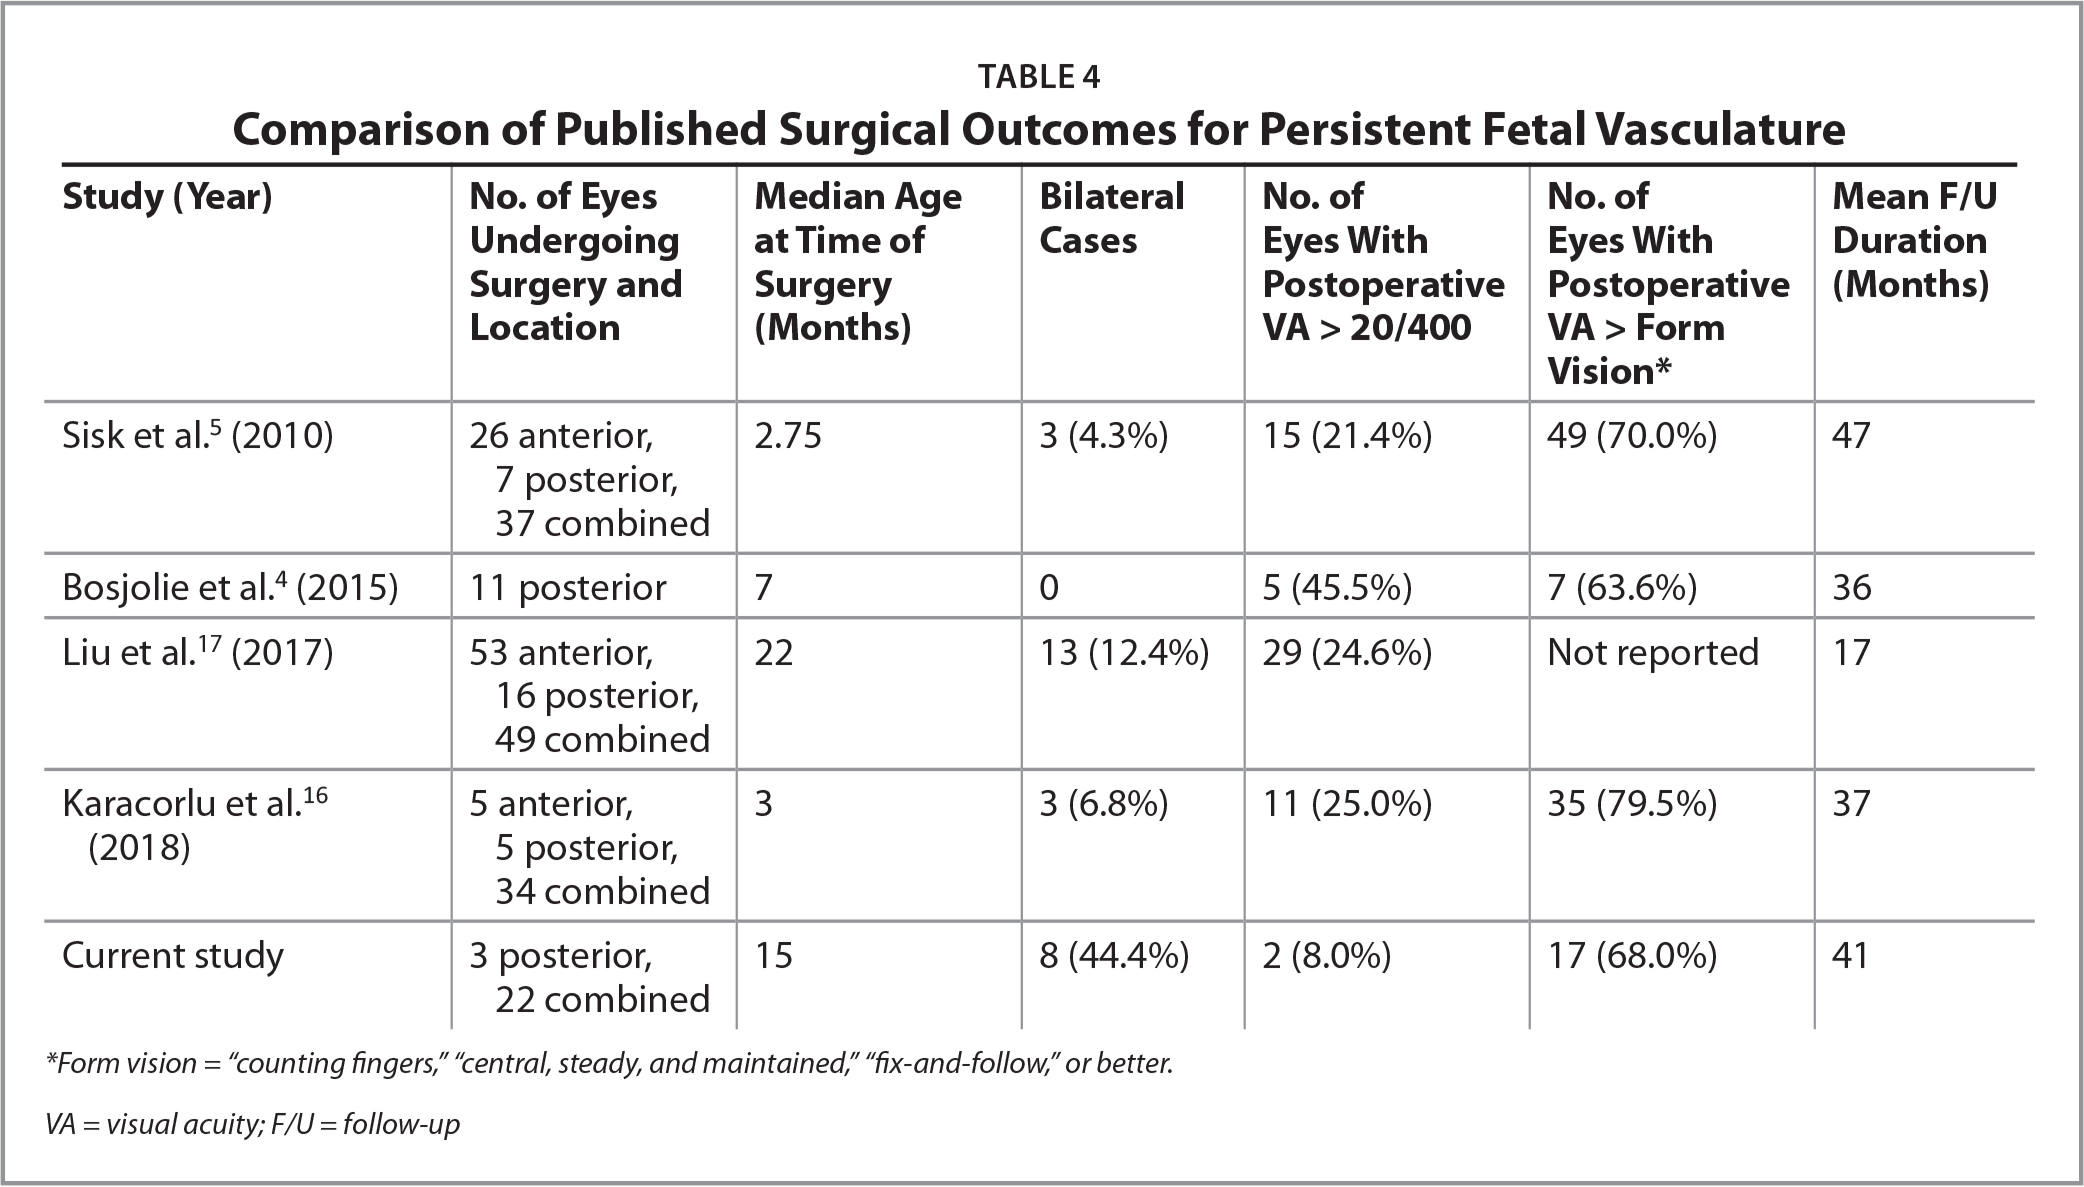 Comparison of Published Surgical Outcomes for Persistent Fetal Vasculature